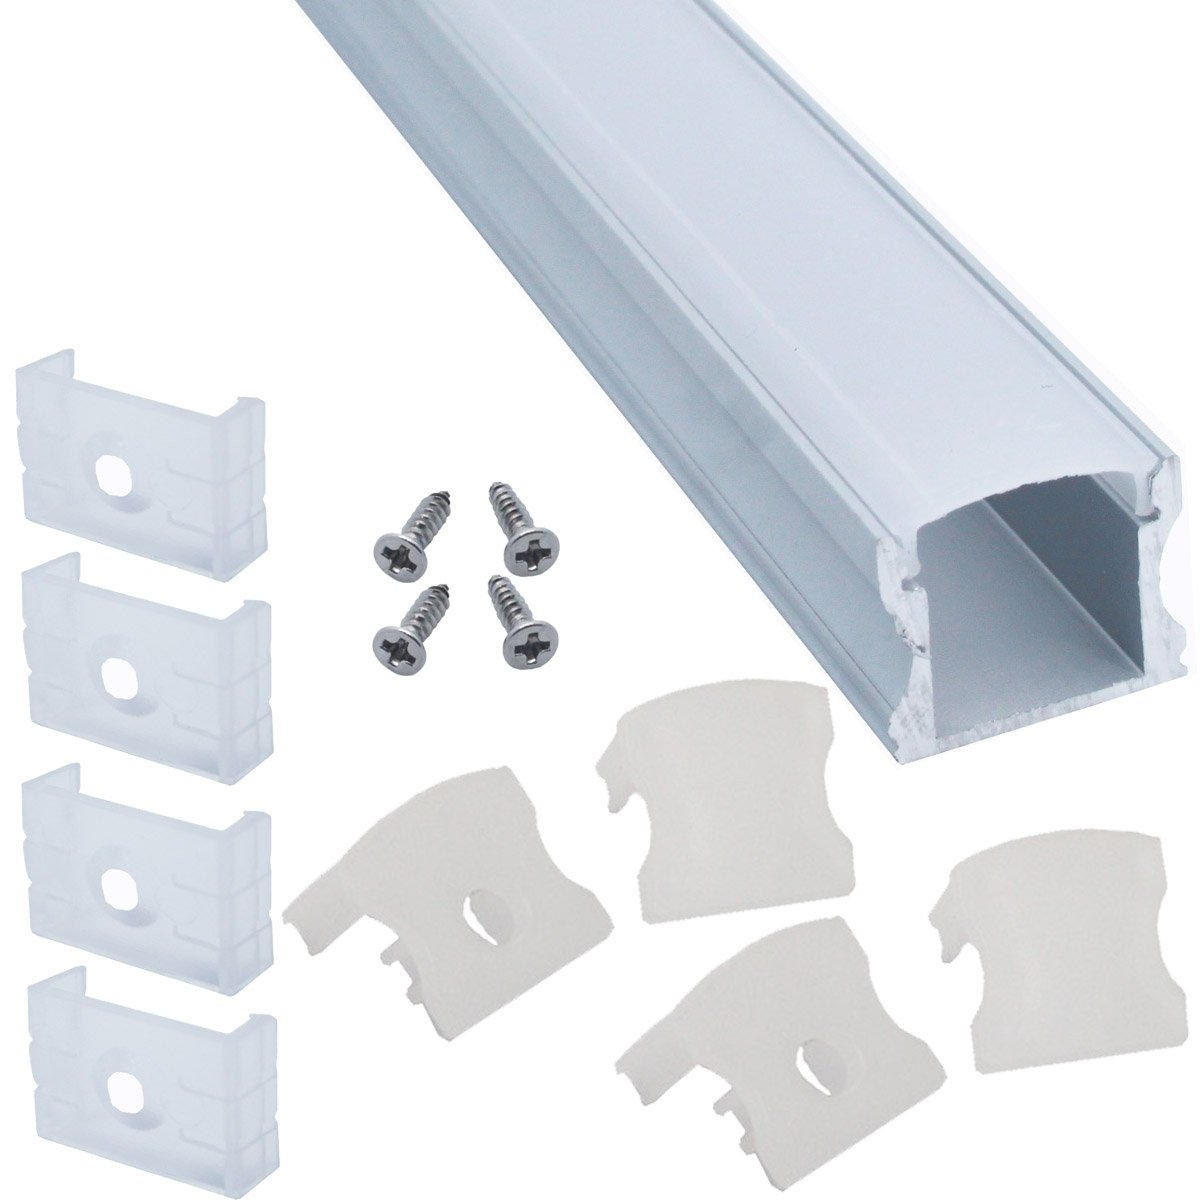 Litever 6-Pack Aluminum Channels Deep Square Trimless 1 Meter/3.3 FT Aluminum Channel for 12mm Width 5050 5730 2835 LED Strip Mounting Frosted Diffuser with End Caps Mounting Clips LL-007-A-(6-Pack) by Litever